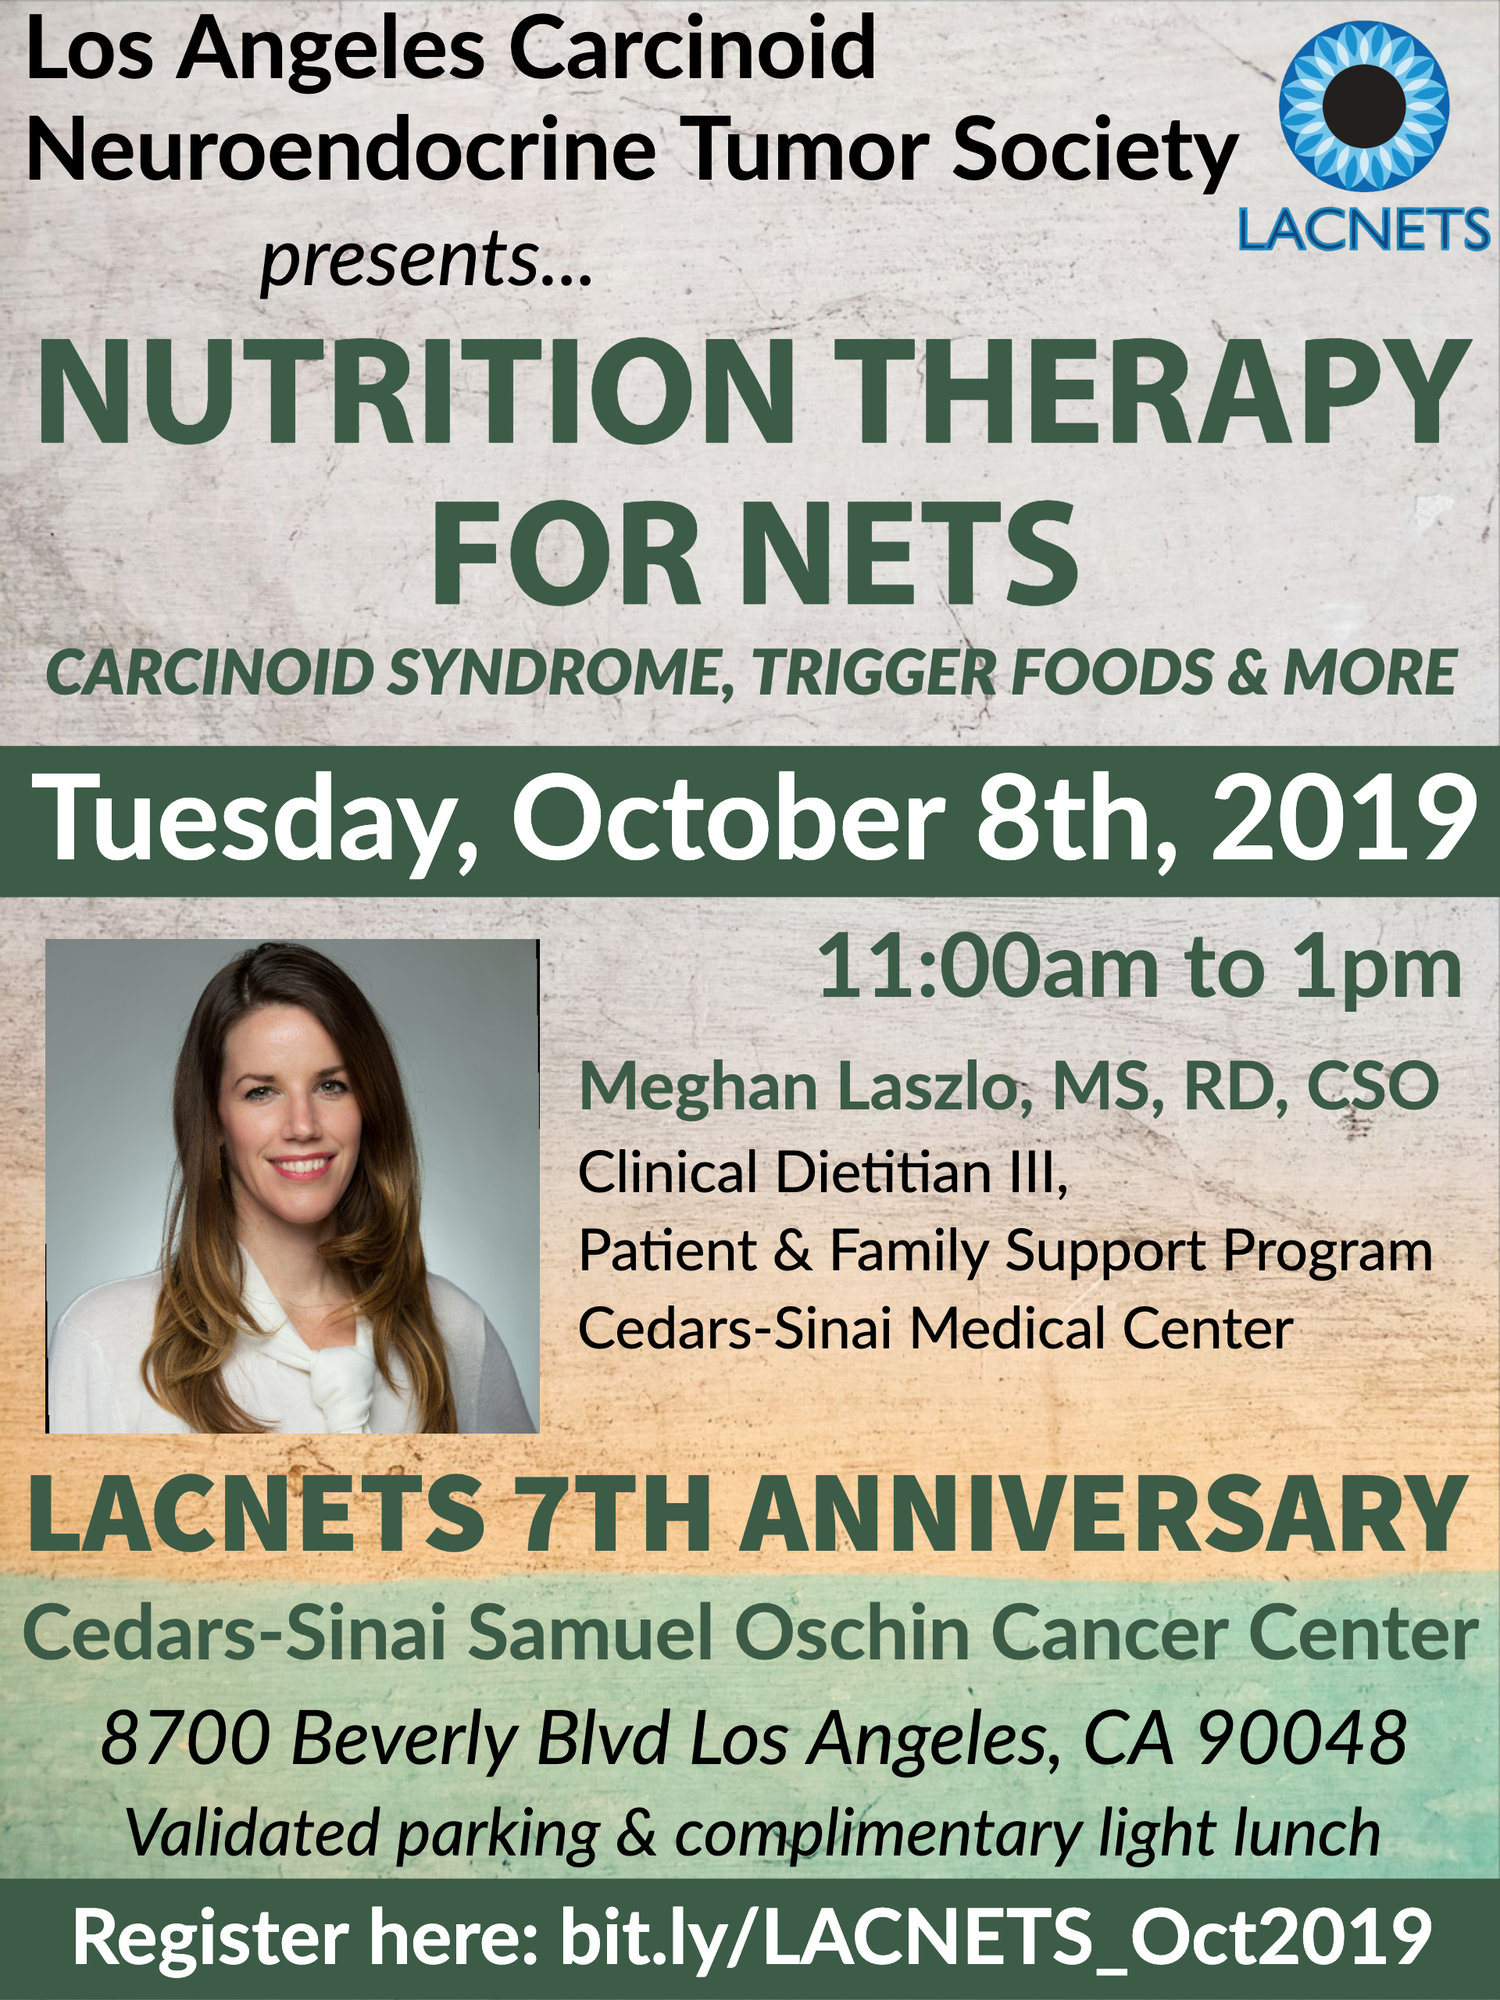 LACNETS October 8th Meeting hosted by Cedars-Sinai — LACNETS